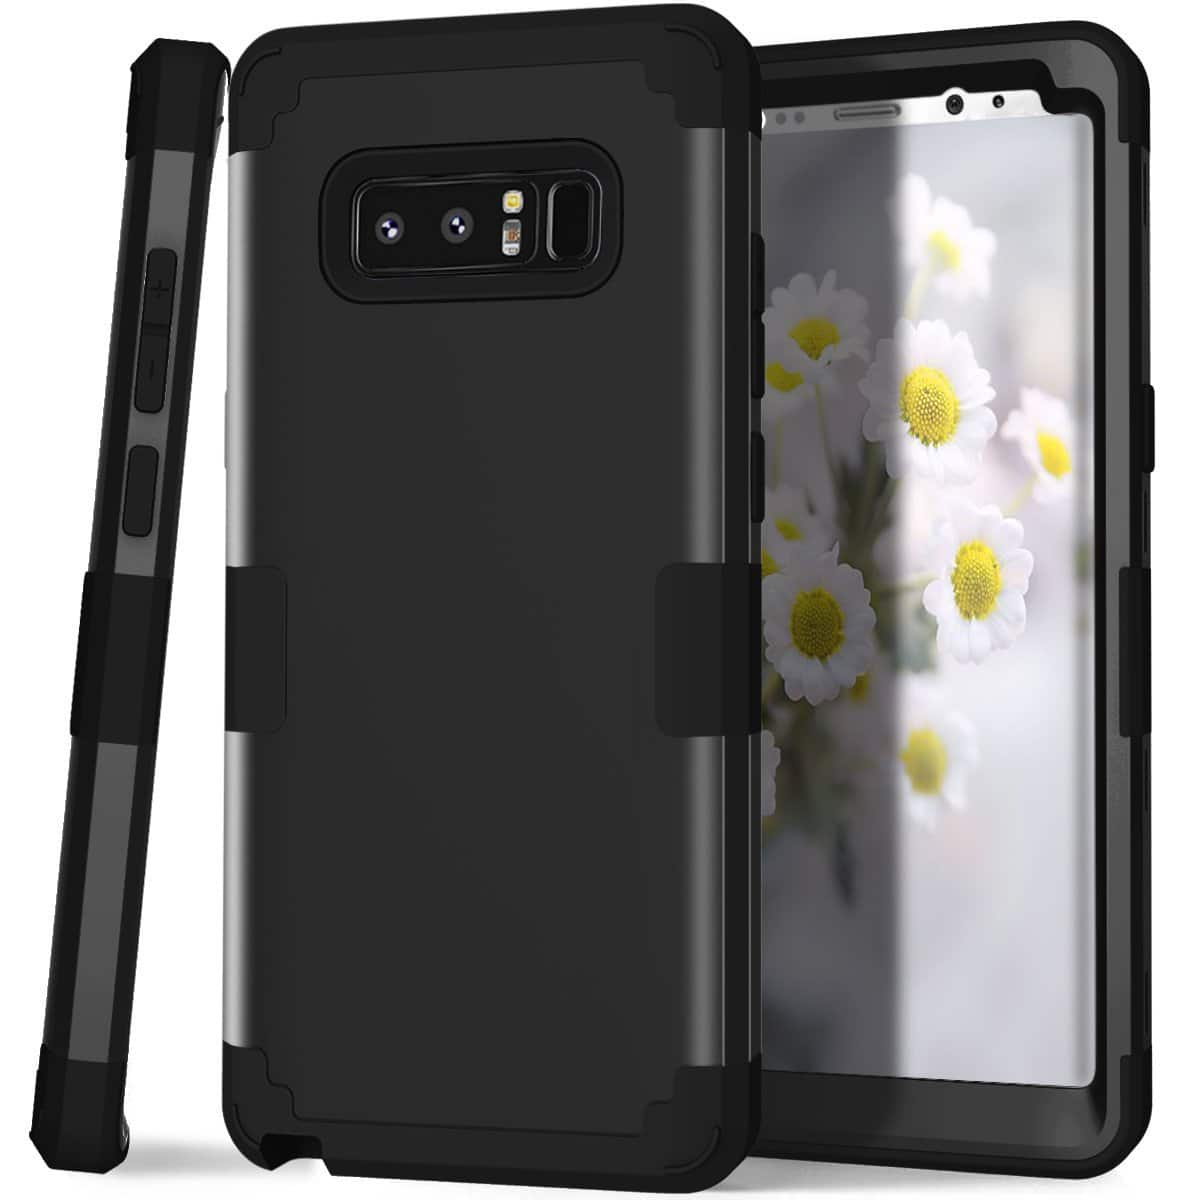 70% Off Code: Samsung Galaxy Note 8 Shockproof Bumper Case (All Colors) - $3.00 with code @ Amazon (Ships Prime)